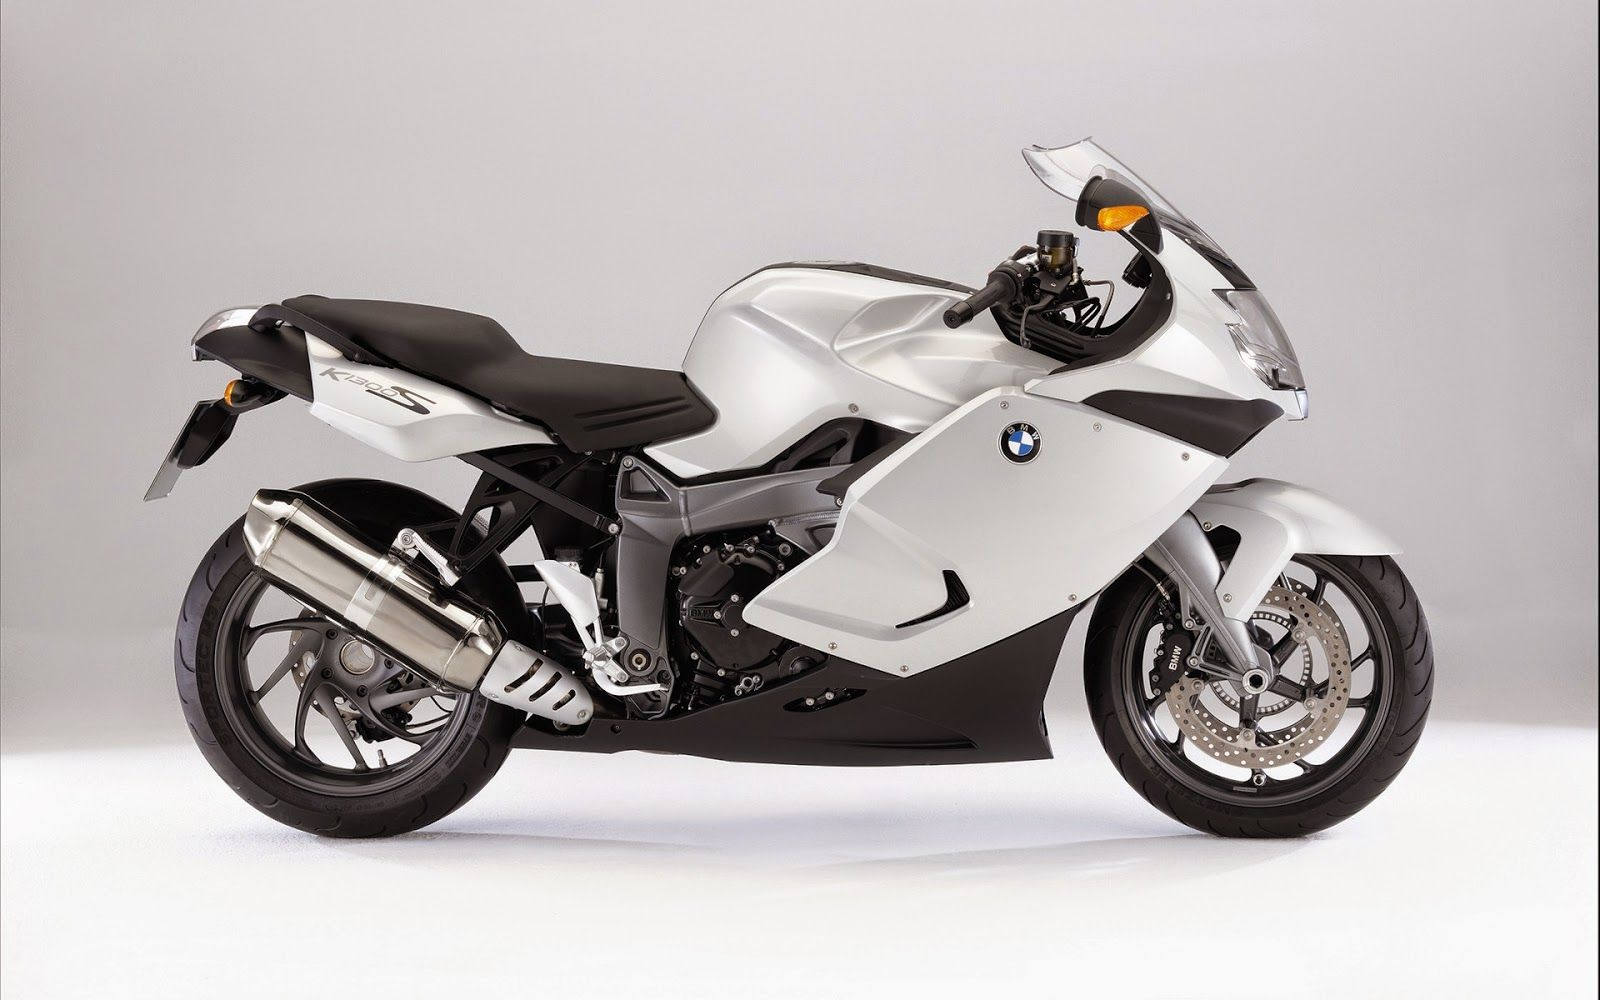 Picture Of Bmw K 1300 S White Motorcycle Wallpaper Bmw Motorcycles Bike Bmw